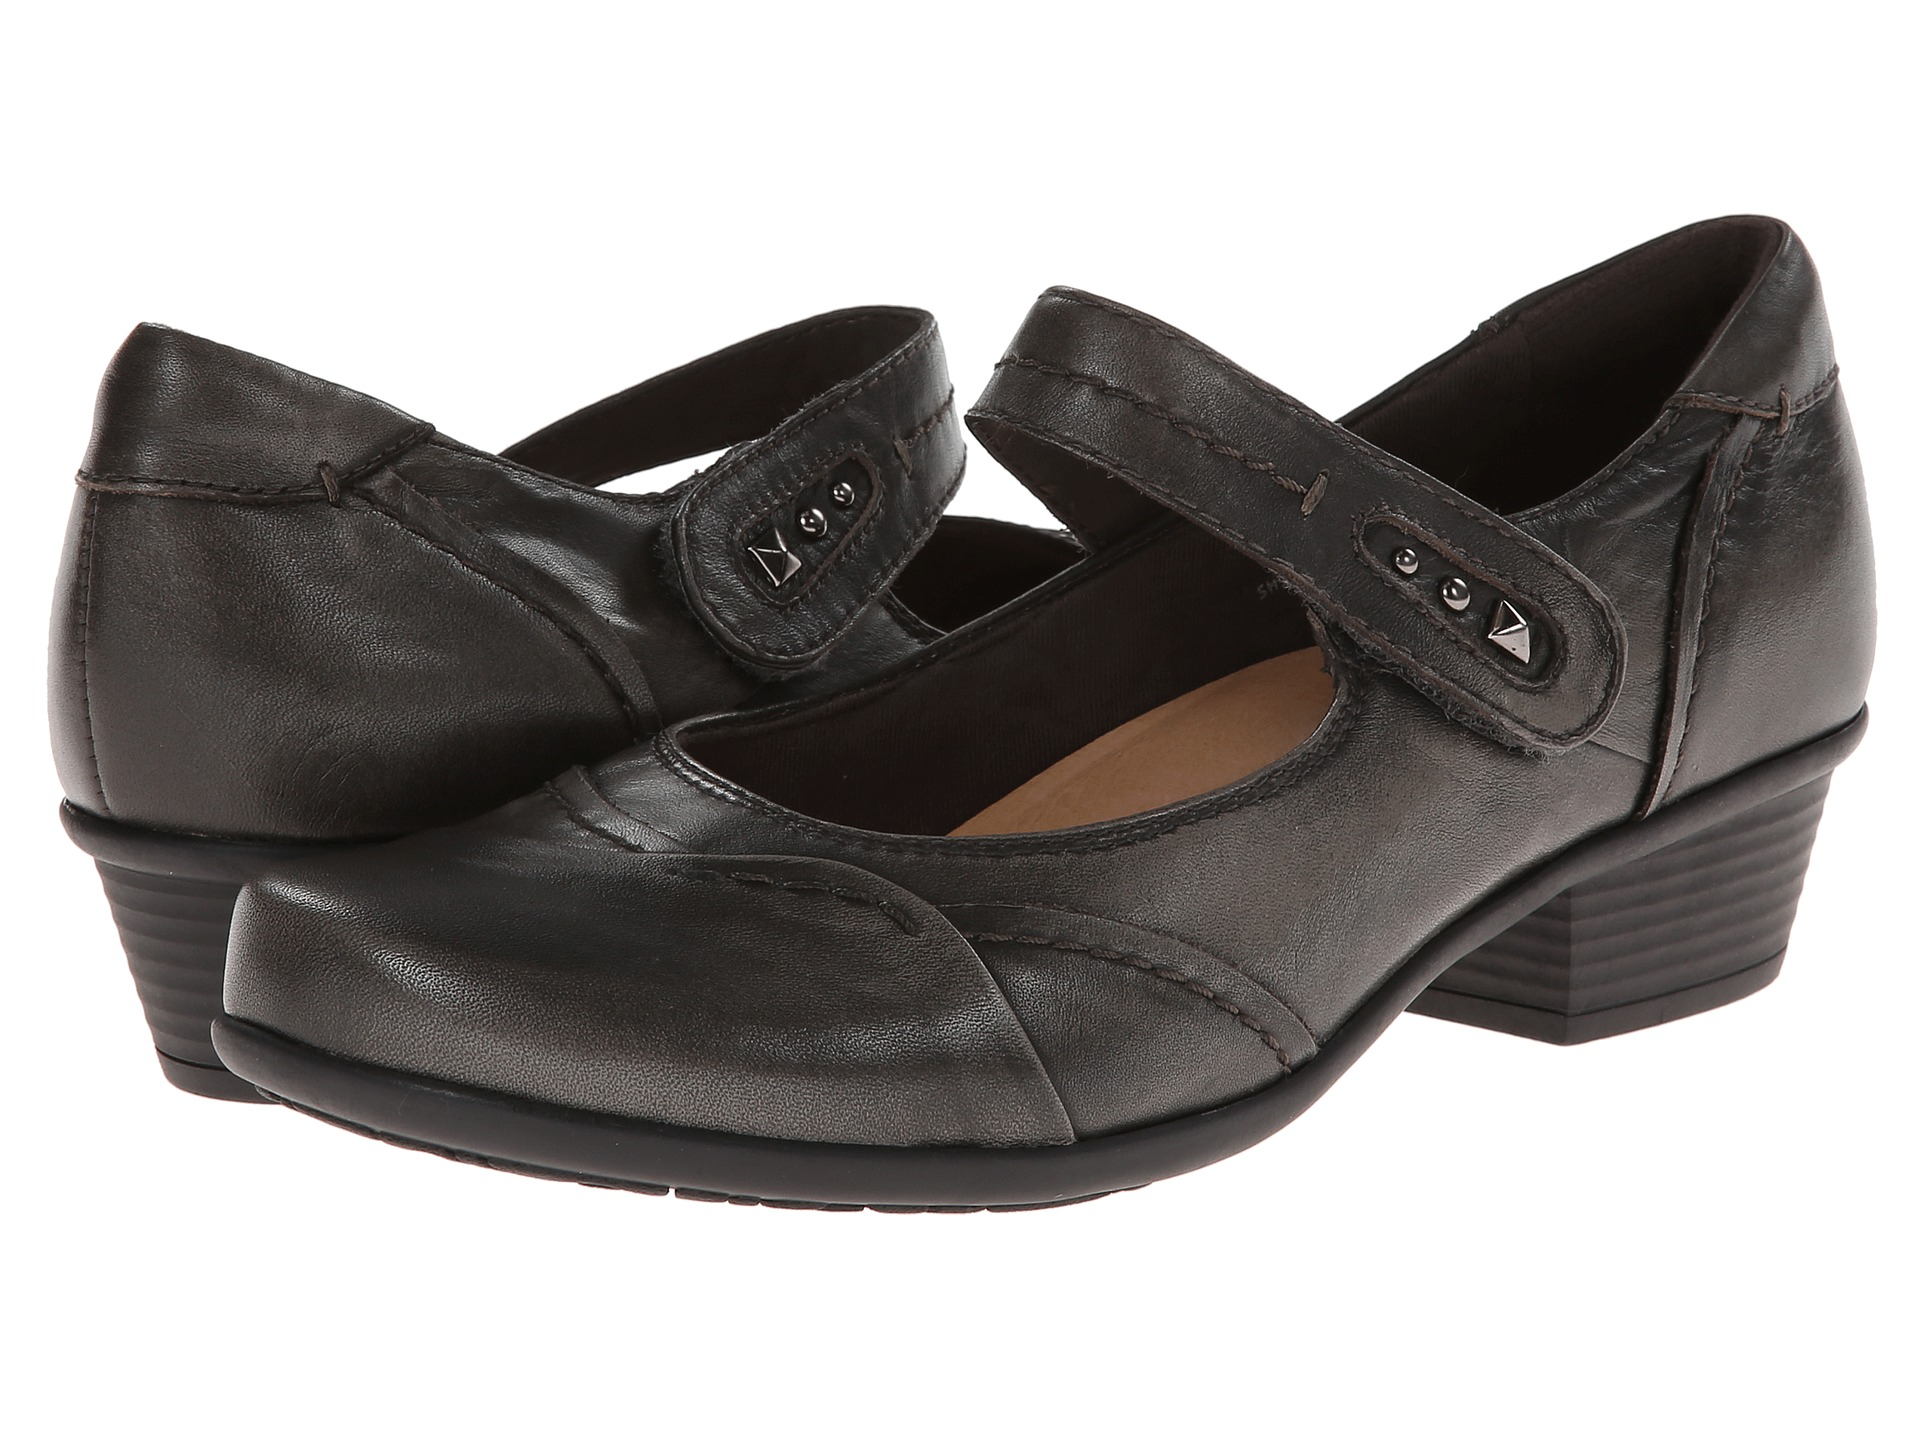 Earth Clover Mary Jane Shoes Grey Size